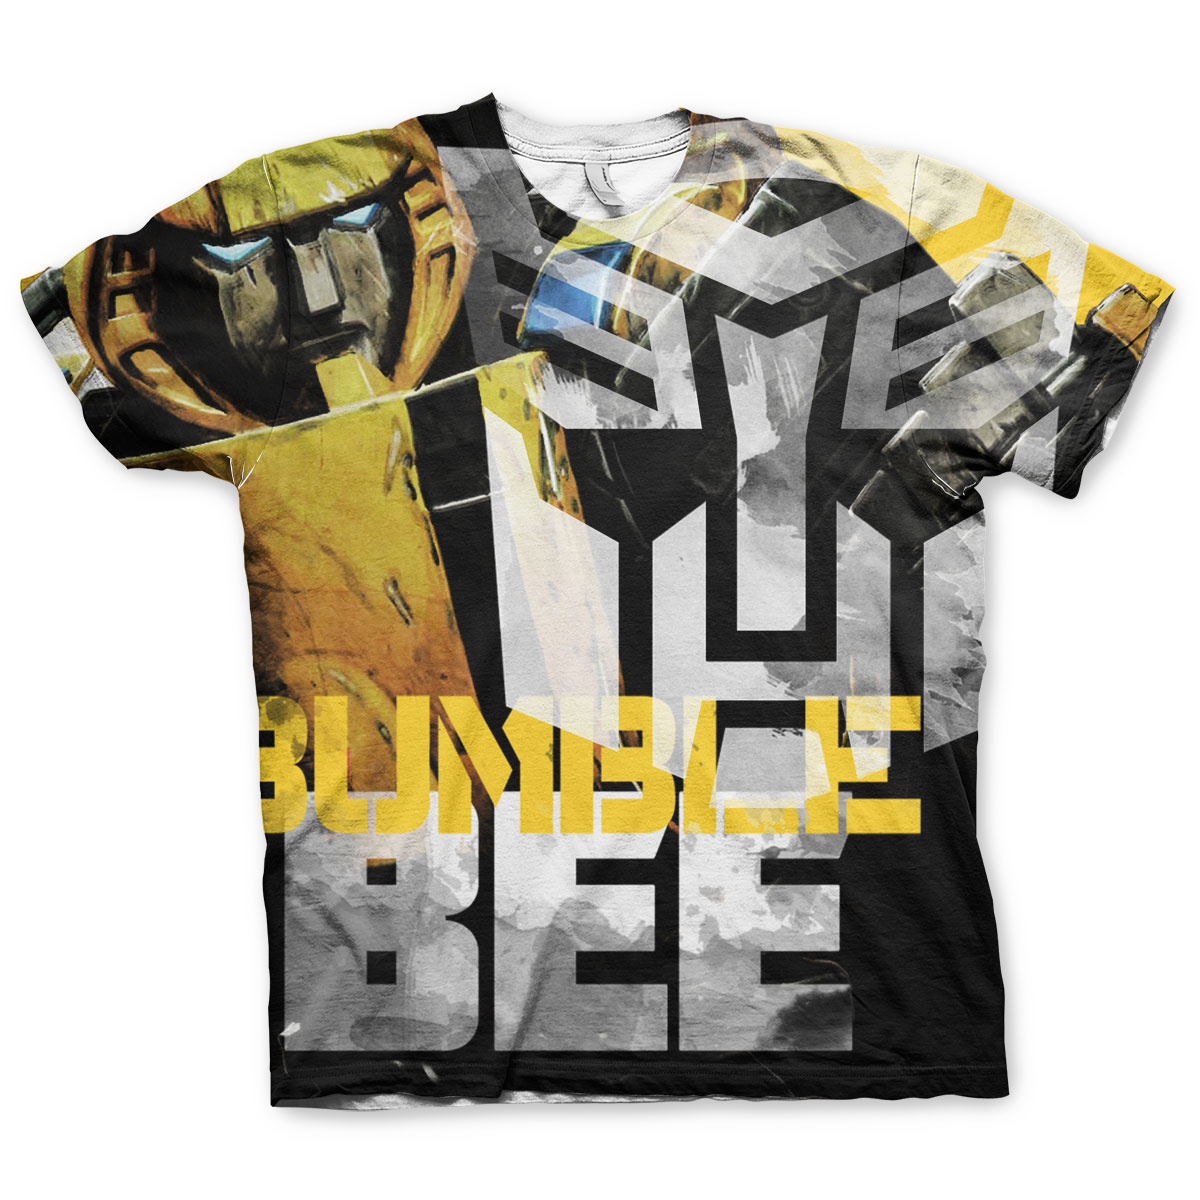 Bumble Bee Allover T-Shirt